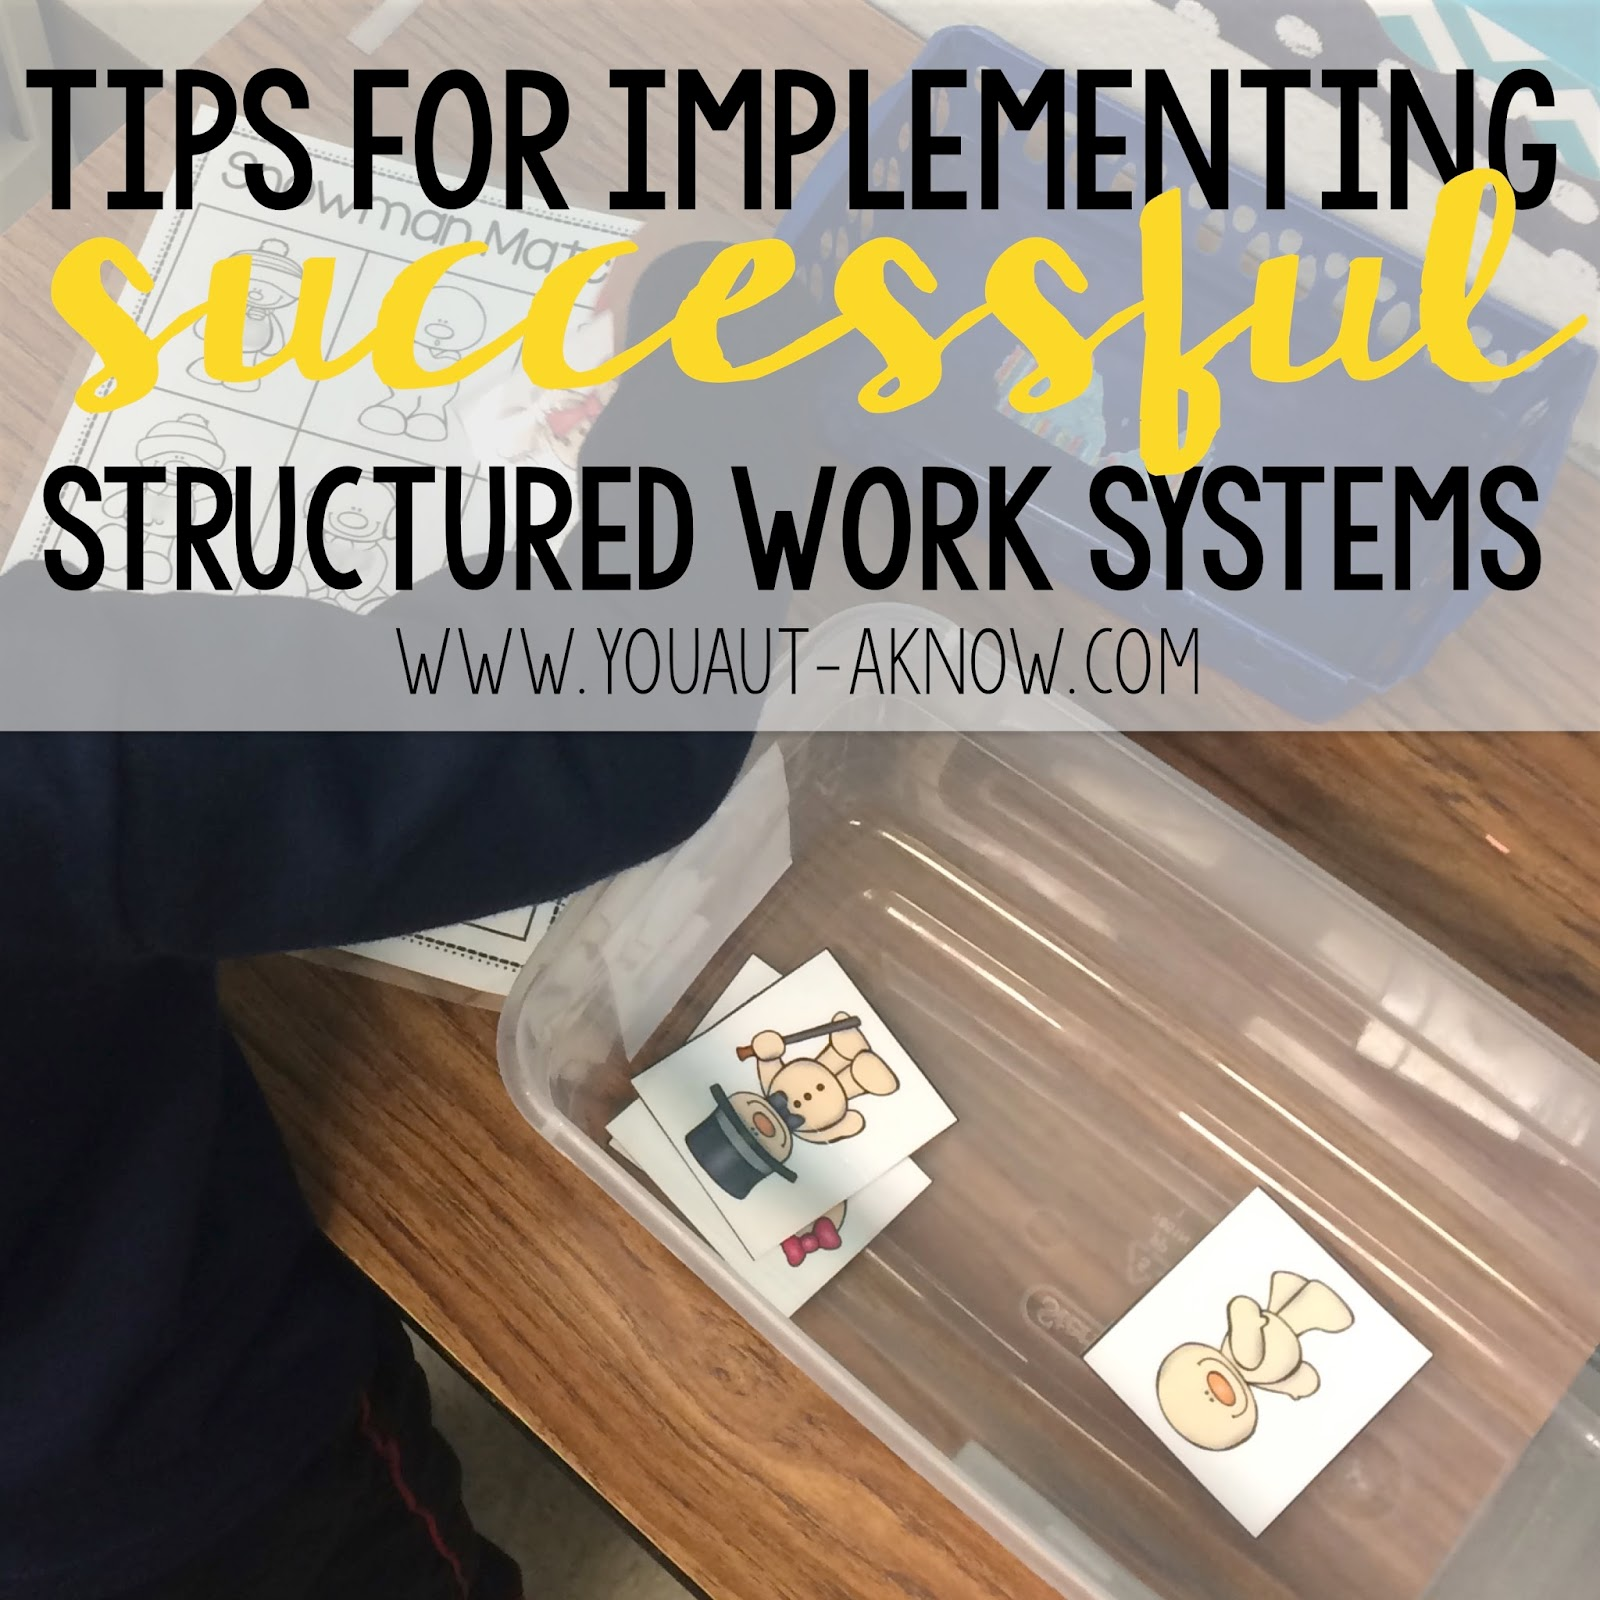 Setting up a successful work station is not an easy job, but these 3 tips will get you started in the right direction!